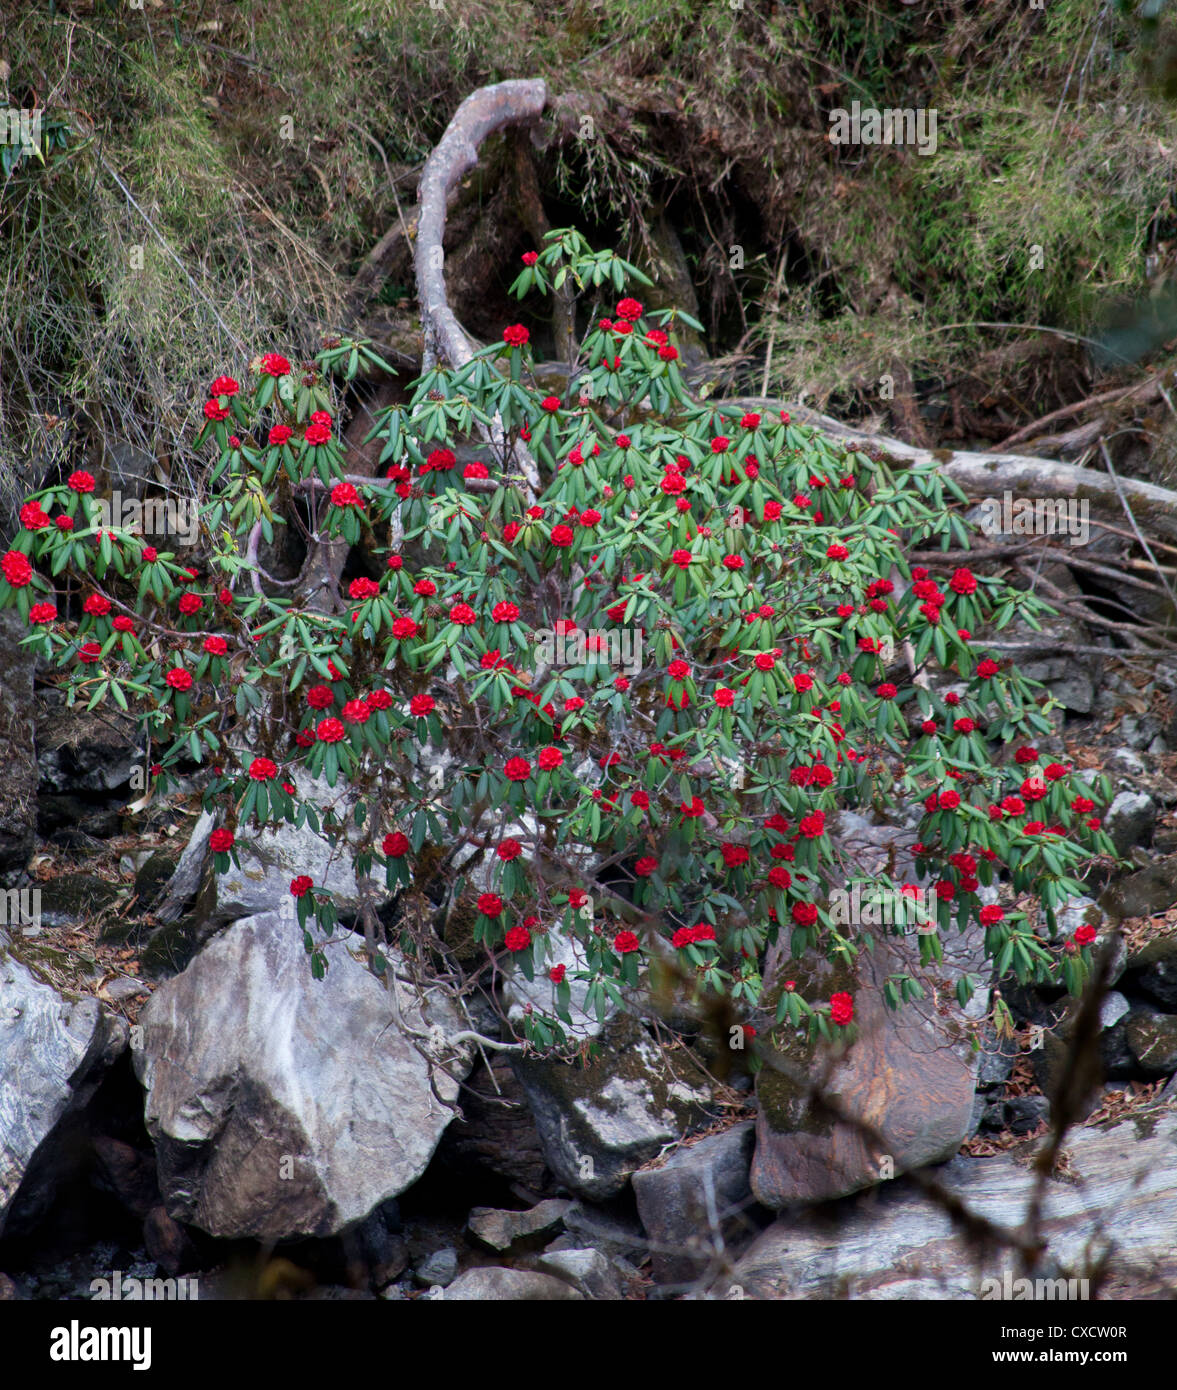 Red Rhododendrons, Rhododendron arboreum, flowering along a rocky river bed, Langtang valley, Nepal - Stock Image